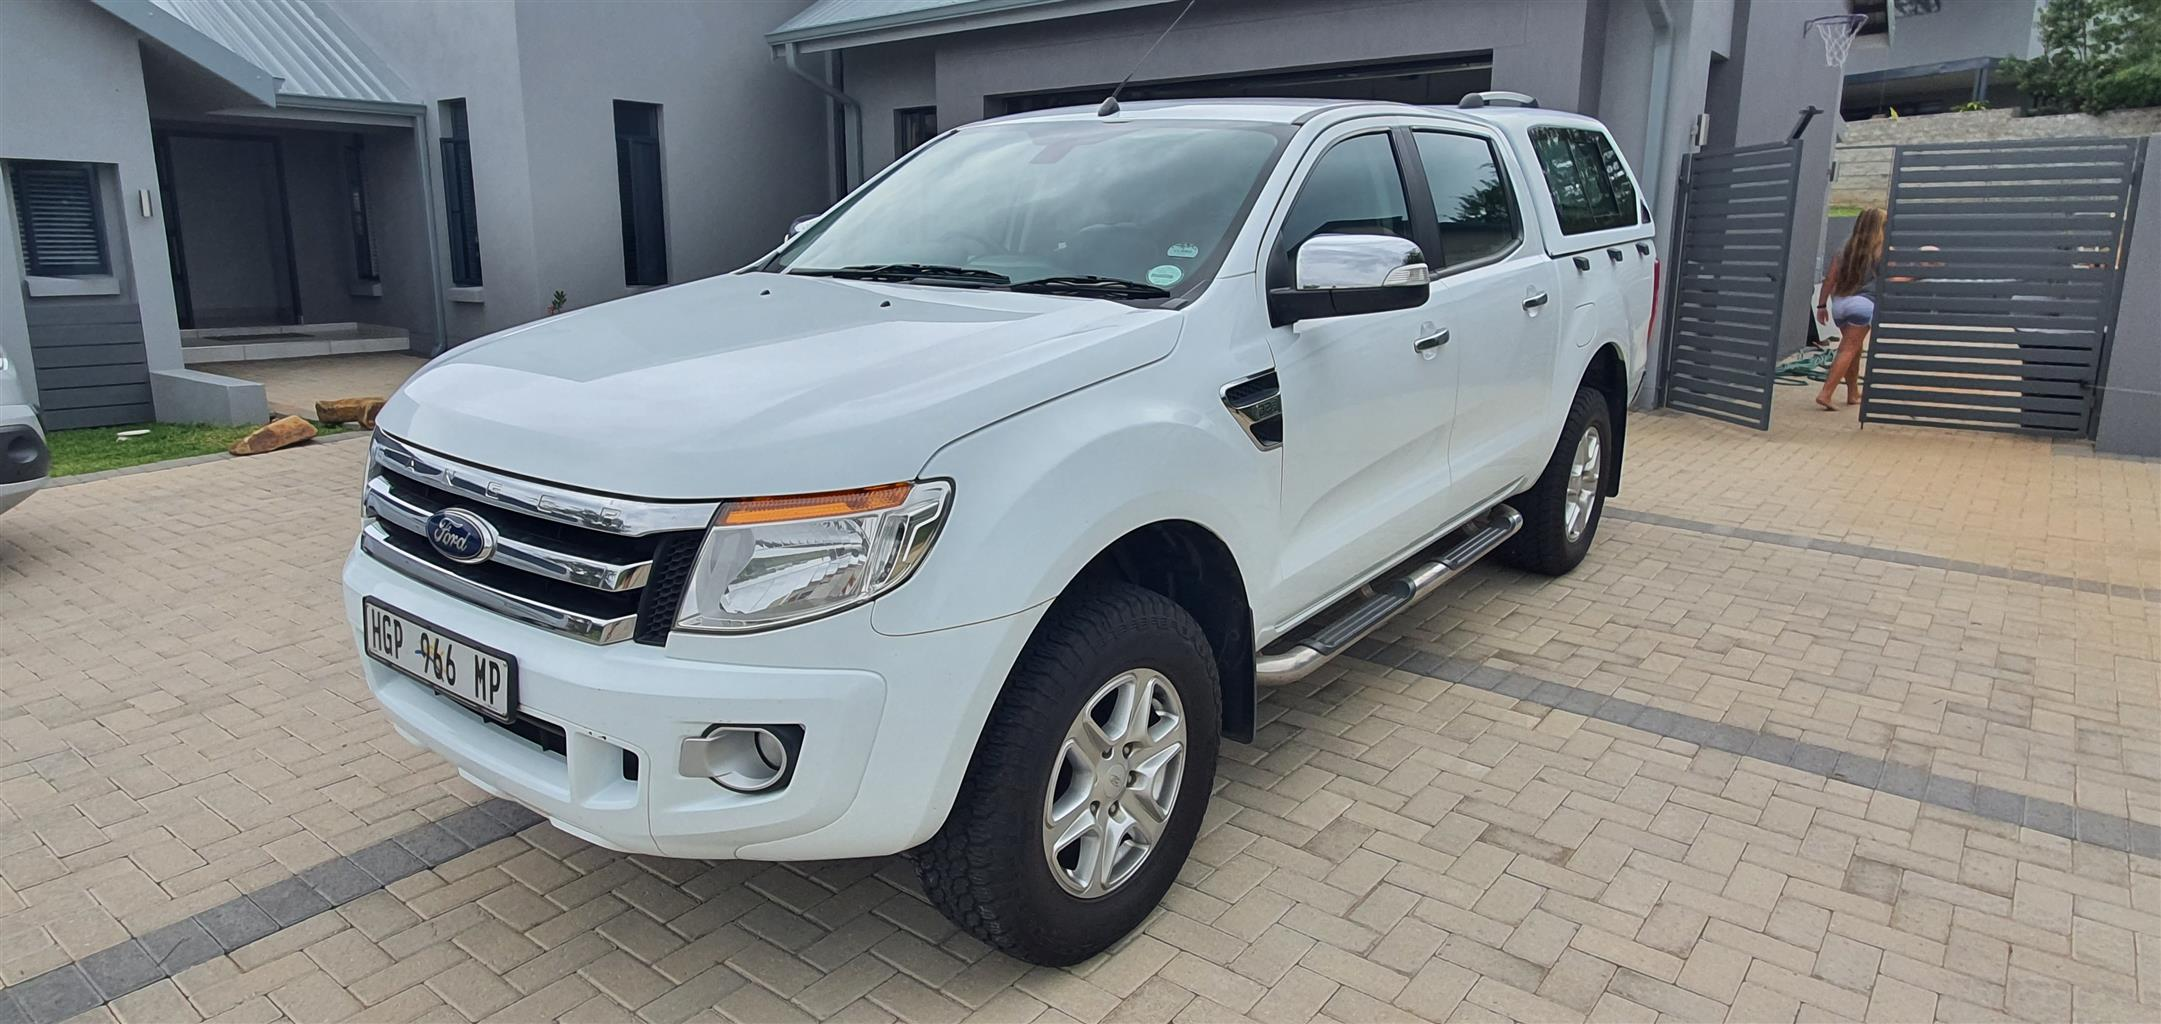 2014 Ford Ranger 3.2 double cab Hi Rider XLT auto